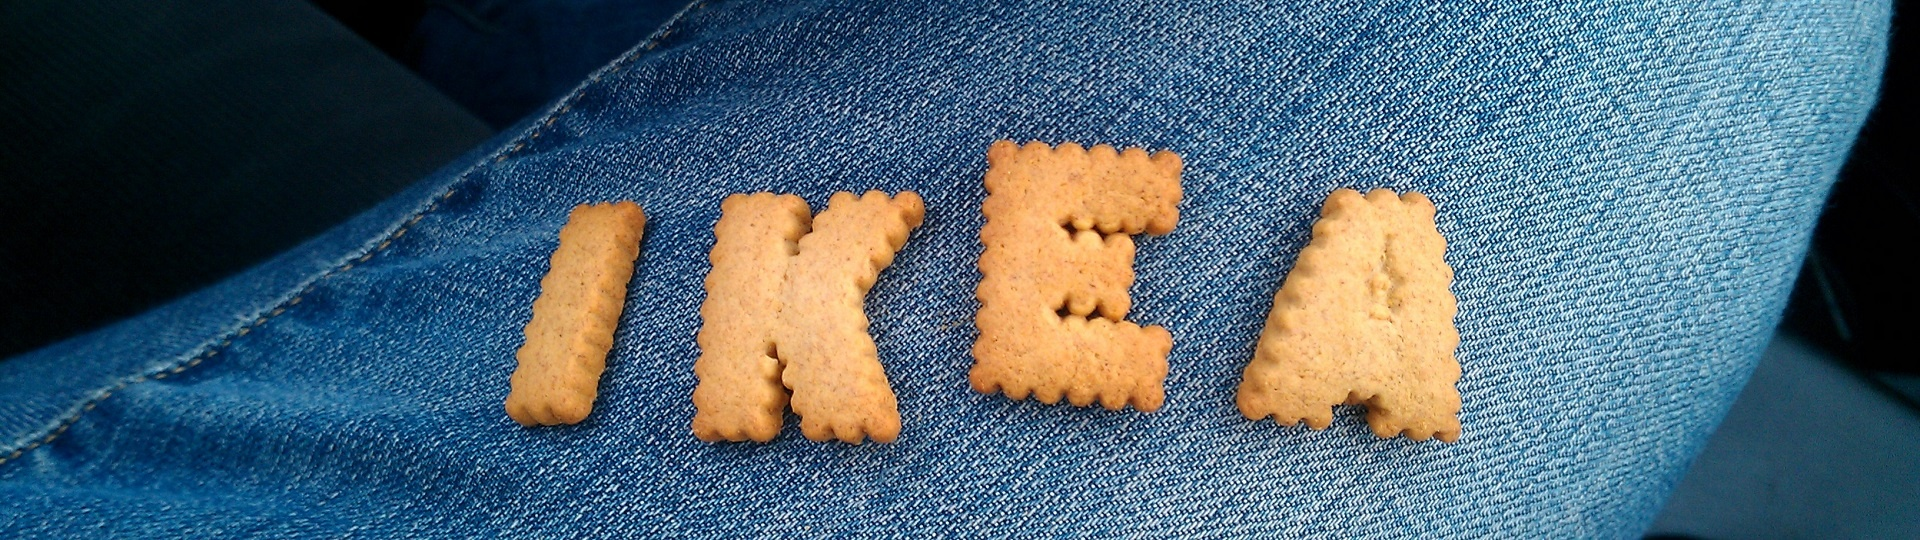 IKEA crackers, by Samuel Hartman/Flickr, Creative Commons